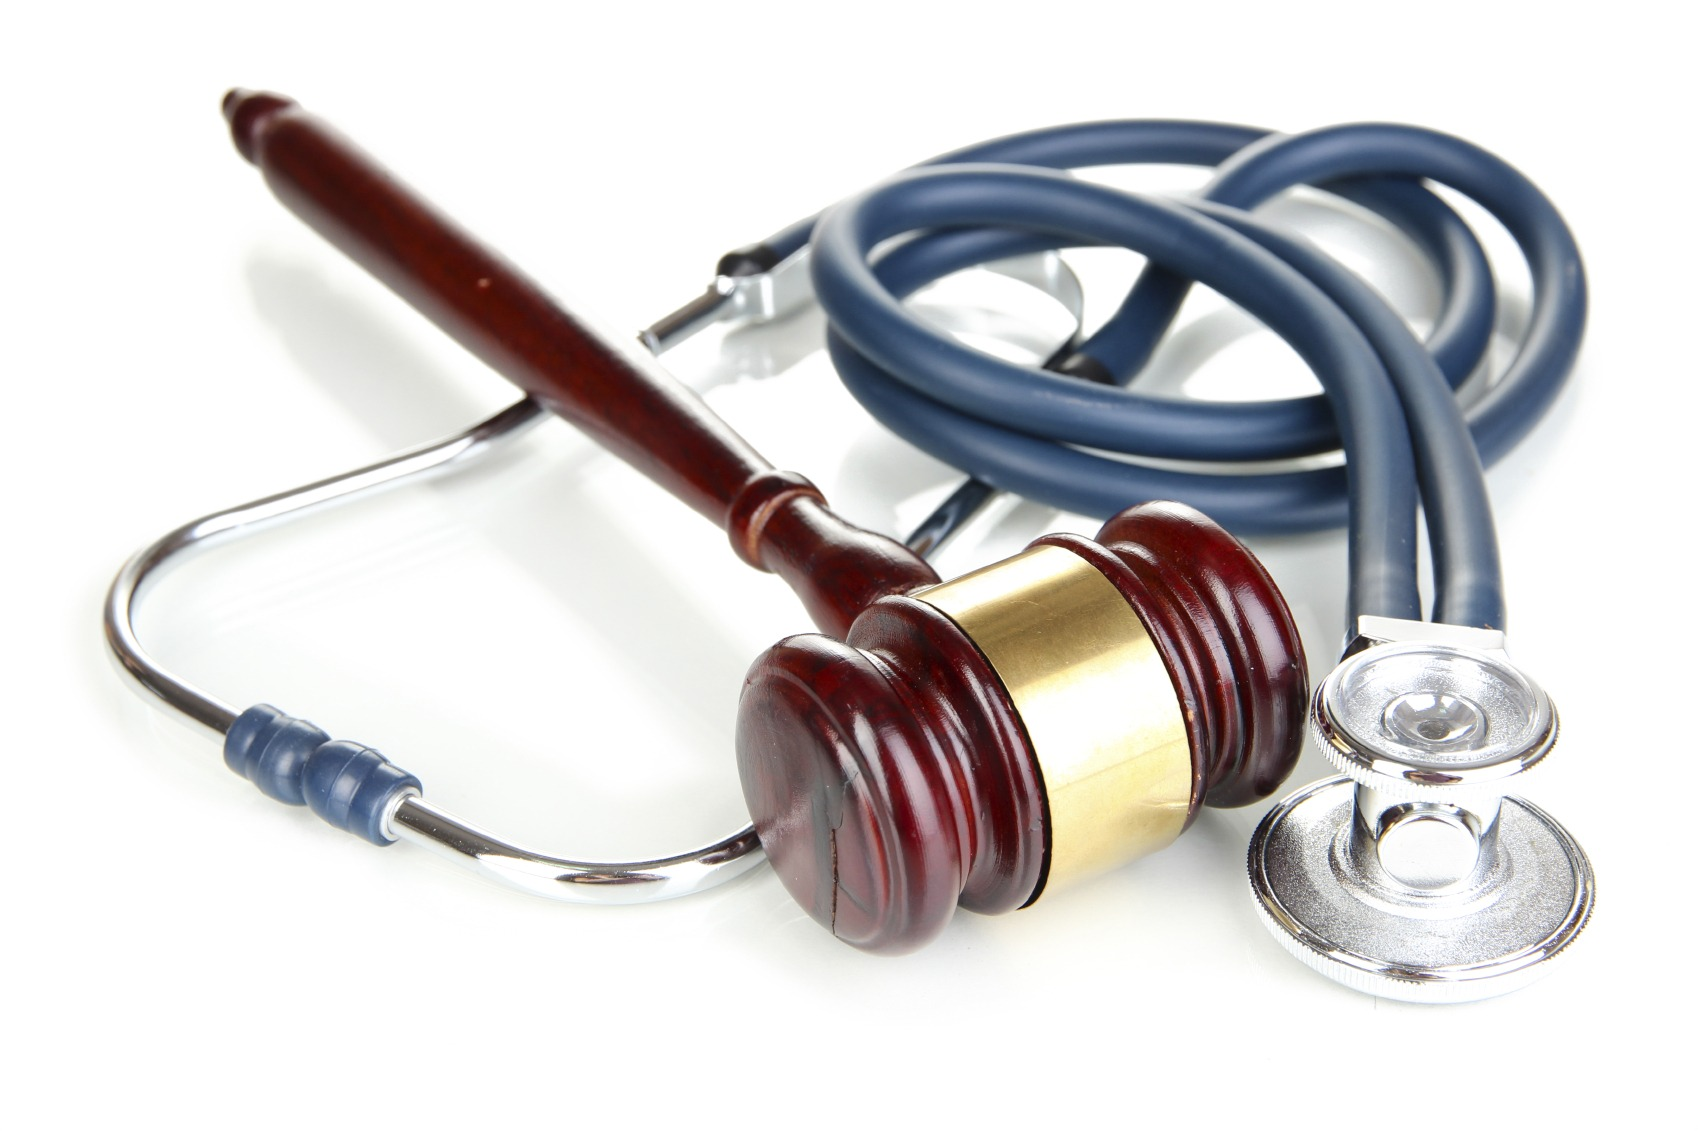 Failure To Diagnose Cancer Malpractice Lawyer